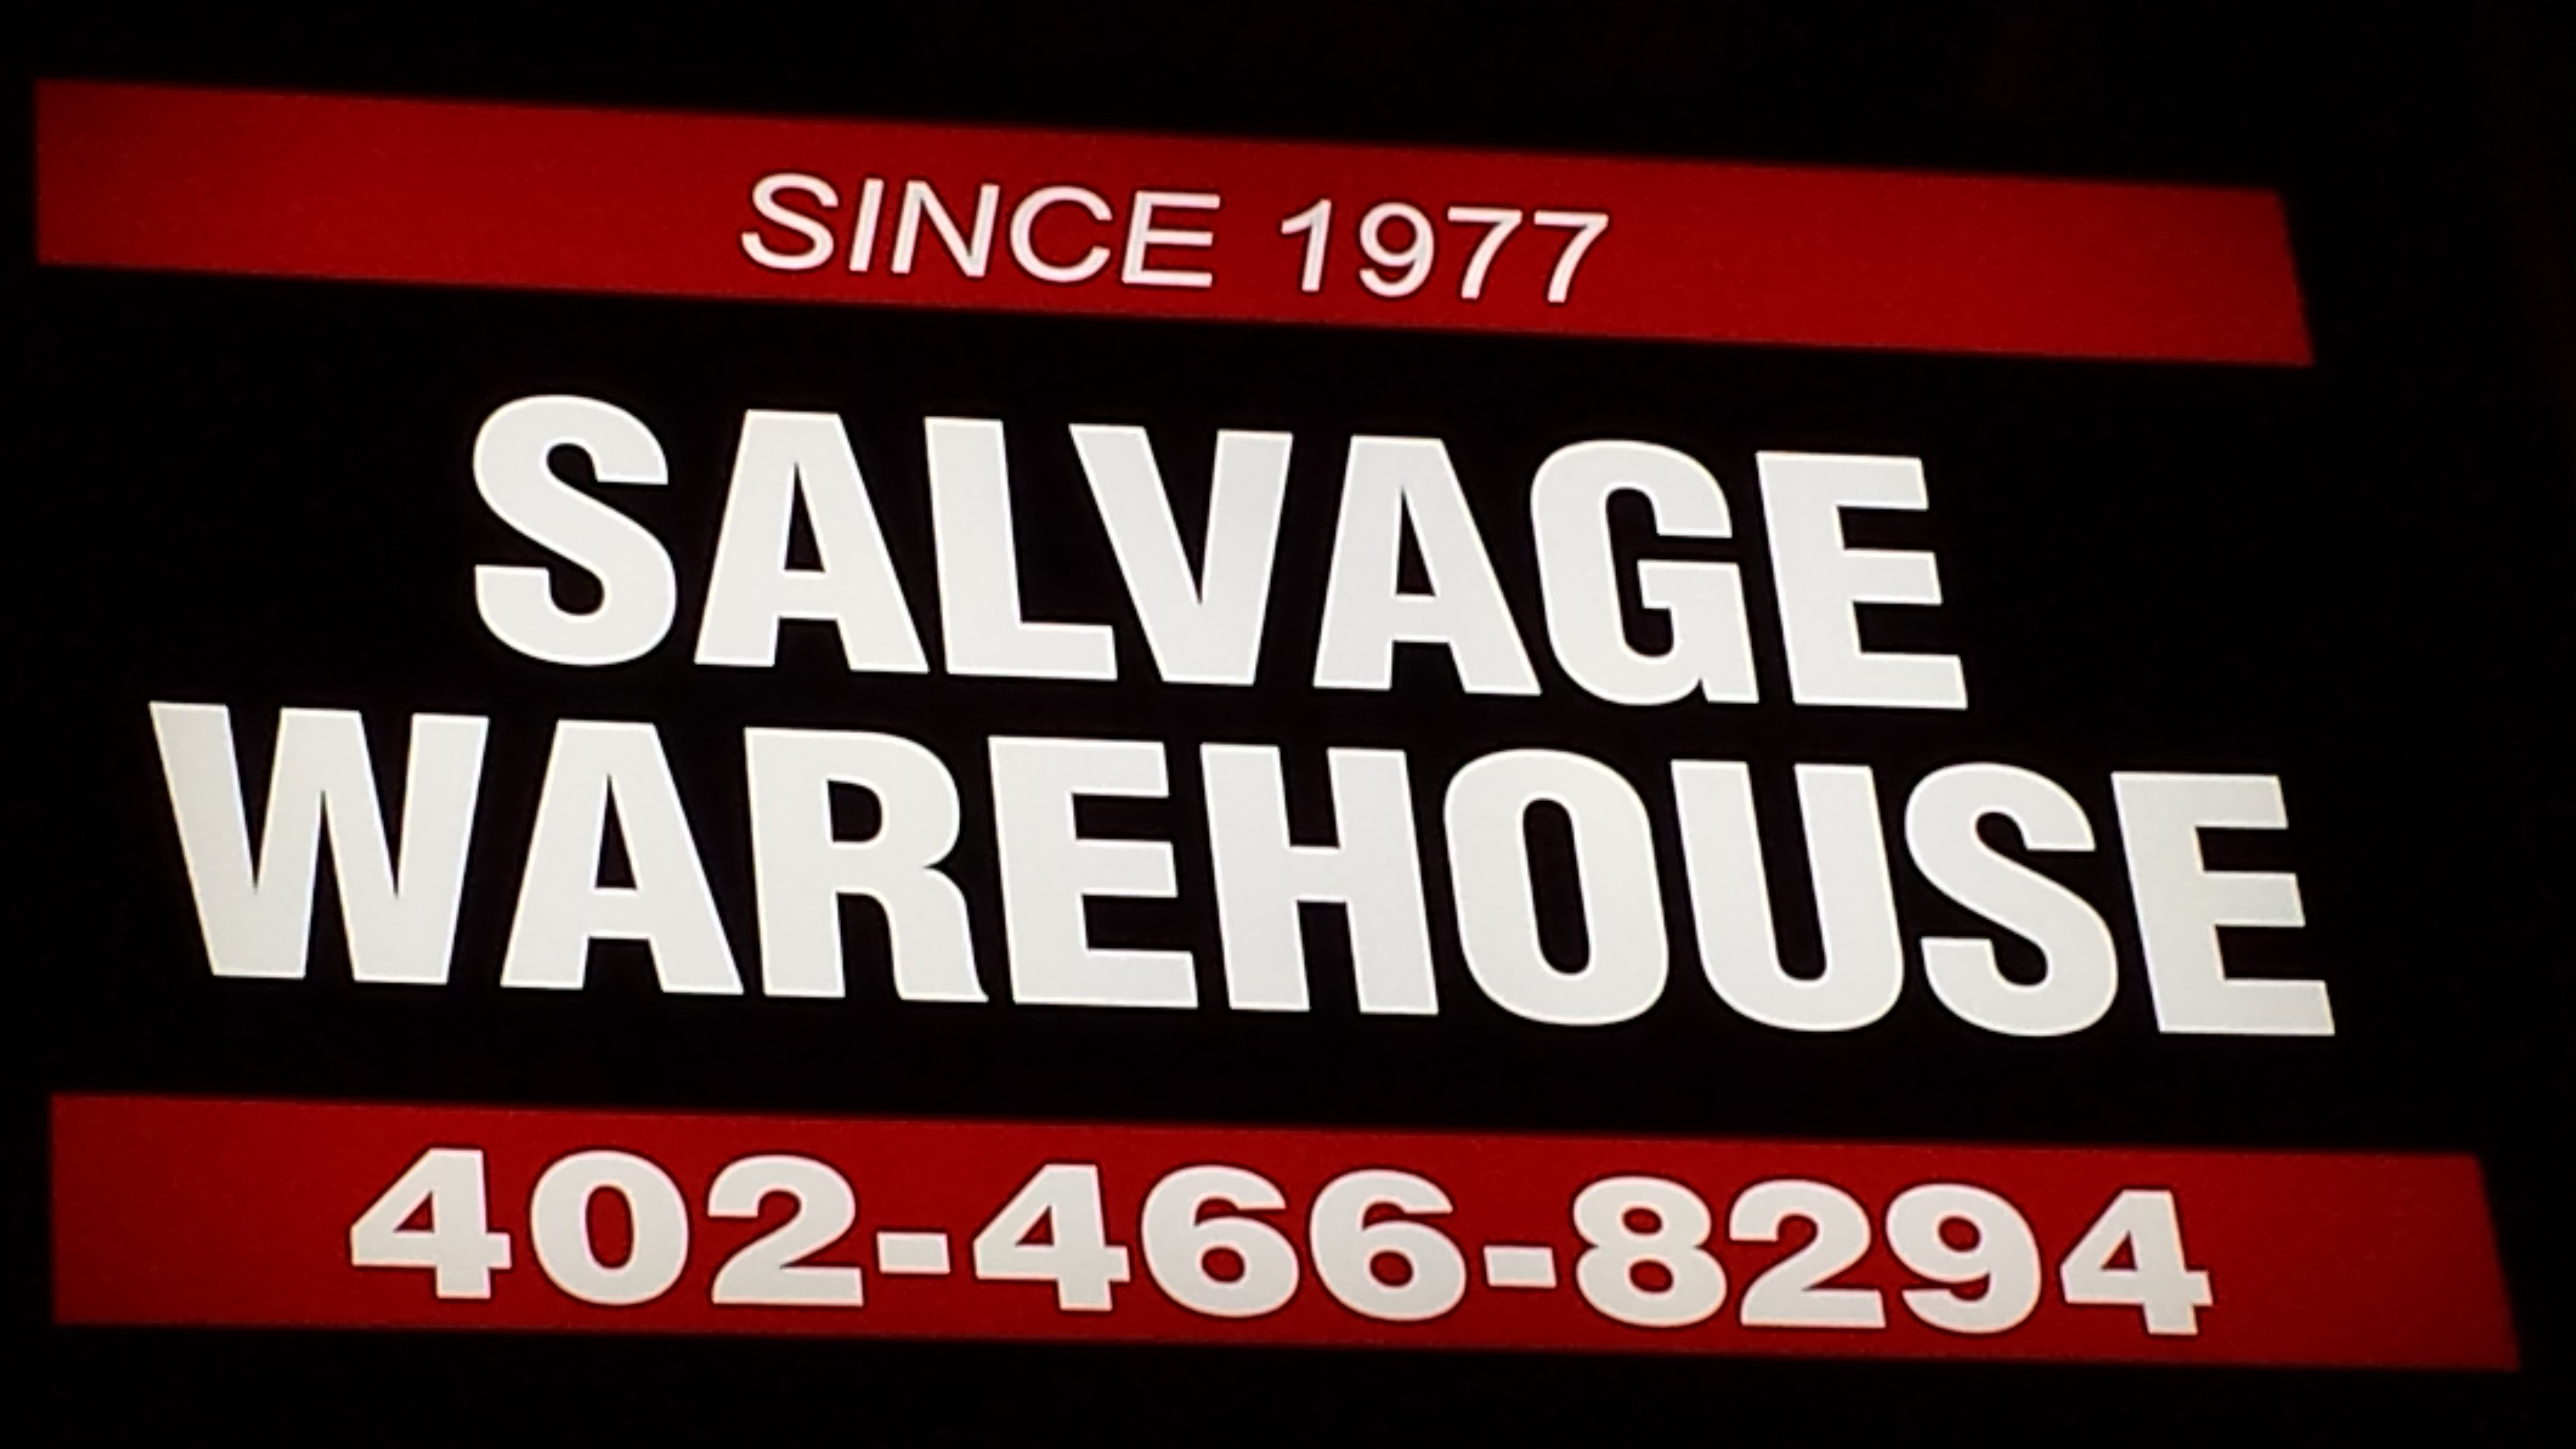 Visit Our Furniture Store In Lincoln NE Household Appliances - Office furniture lincoln ne